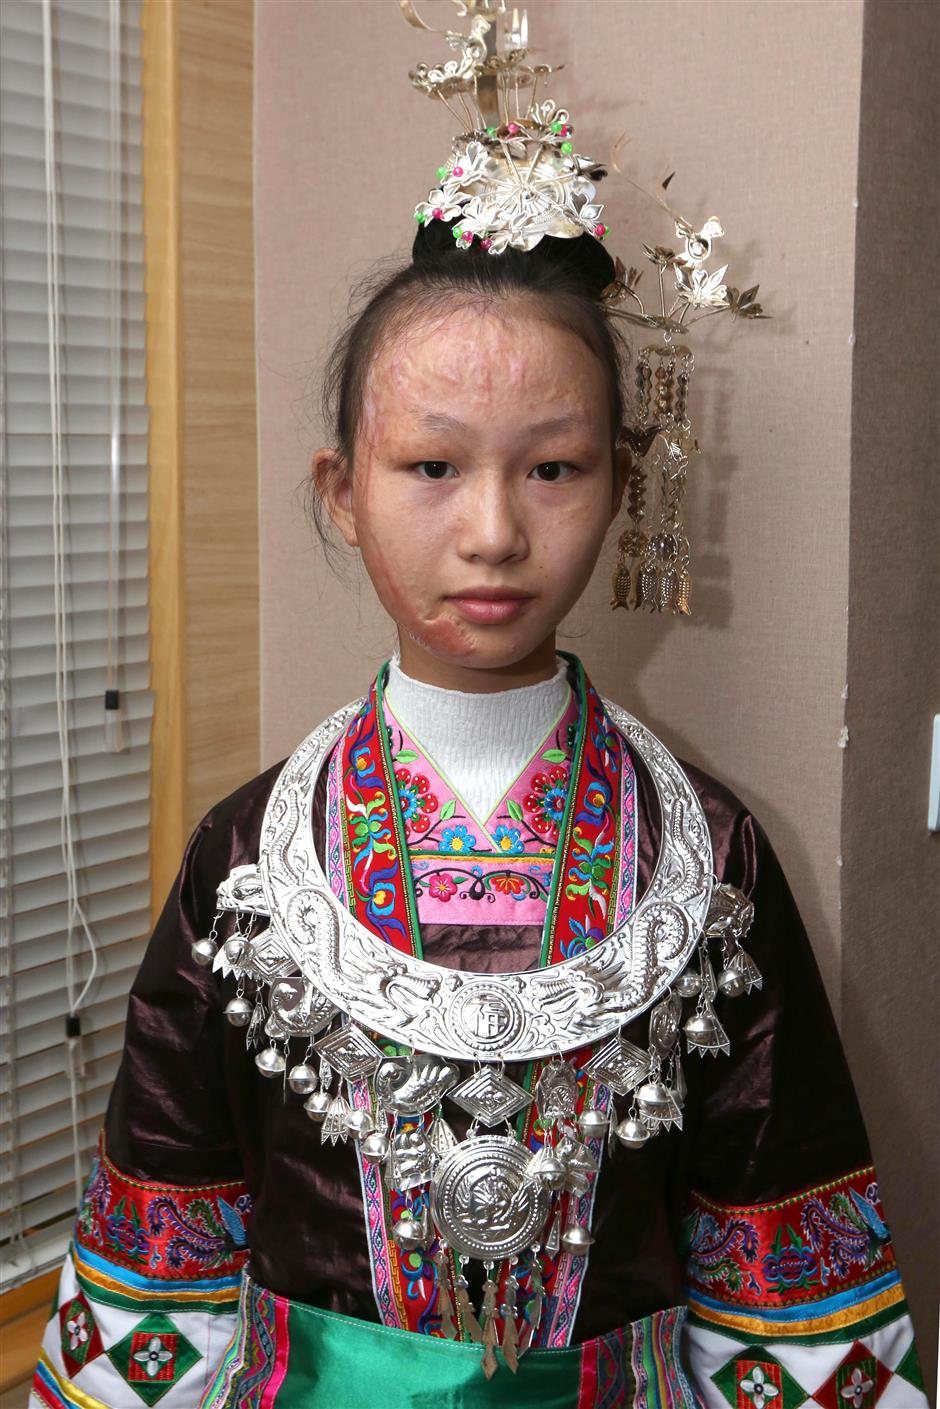 Young girl begins free treatment for facial burns